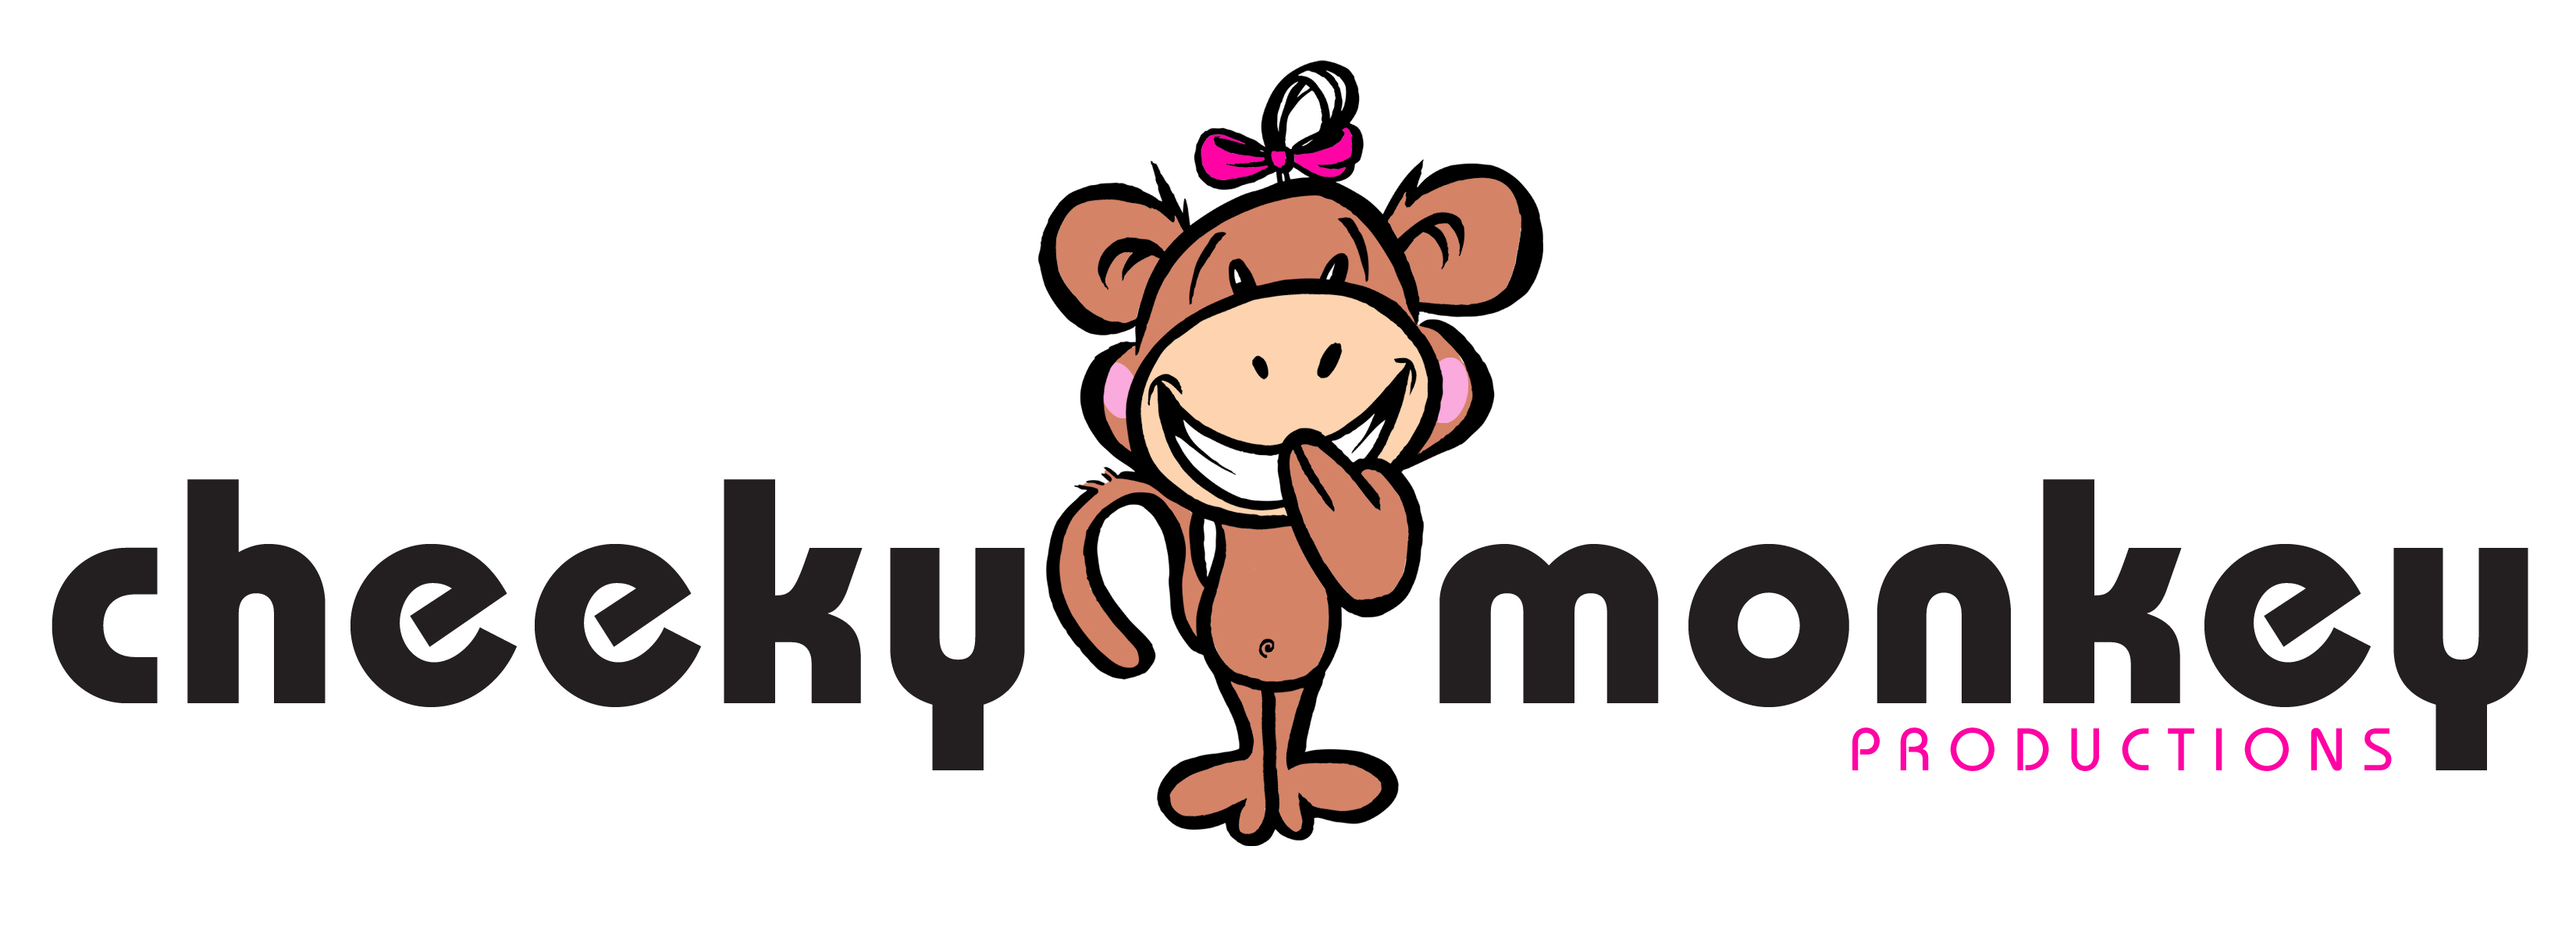 CHEEKY MONKEY PRODUCTIONS